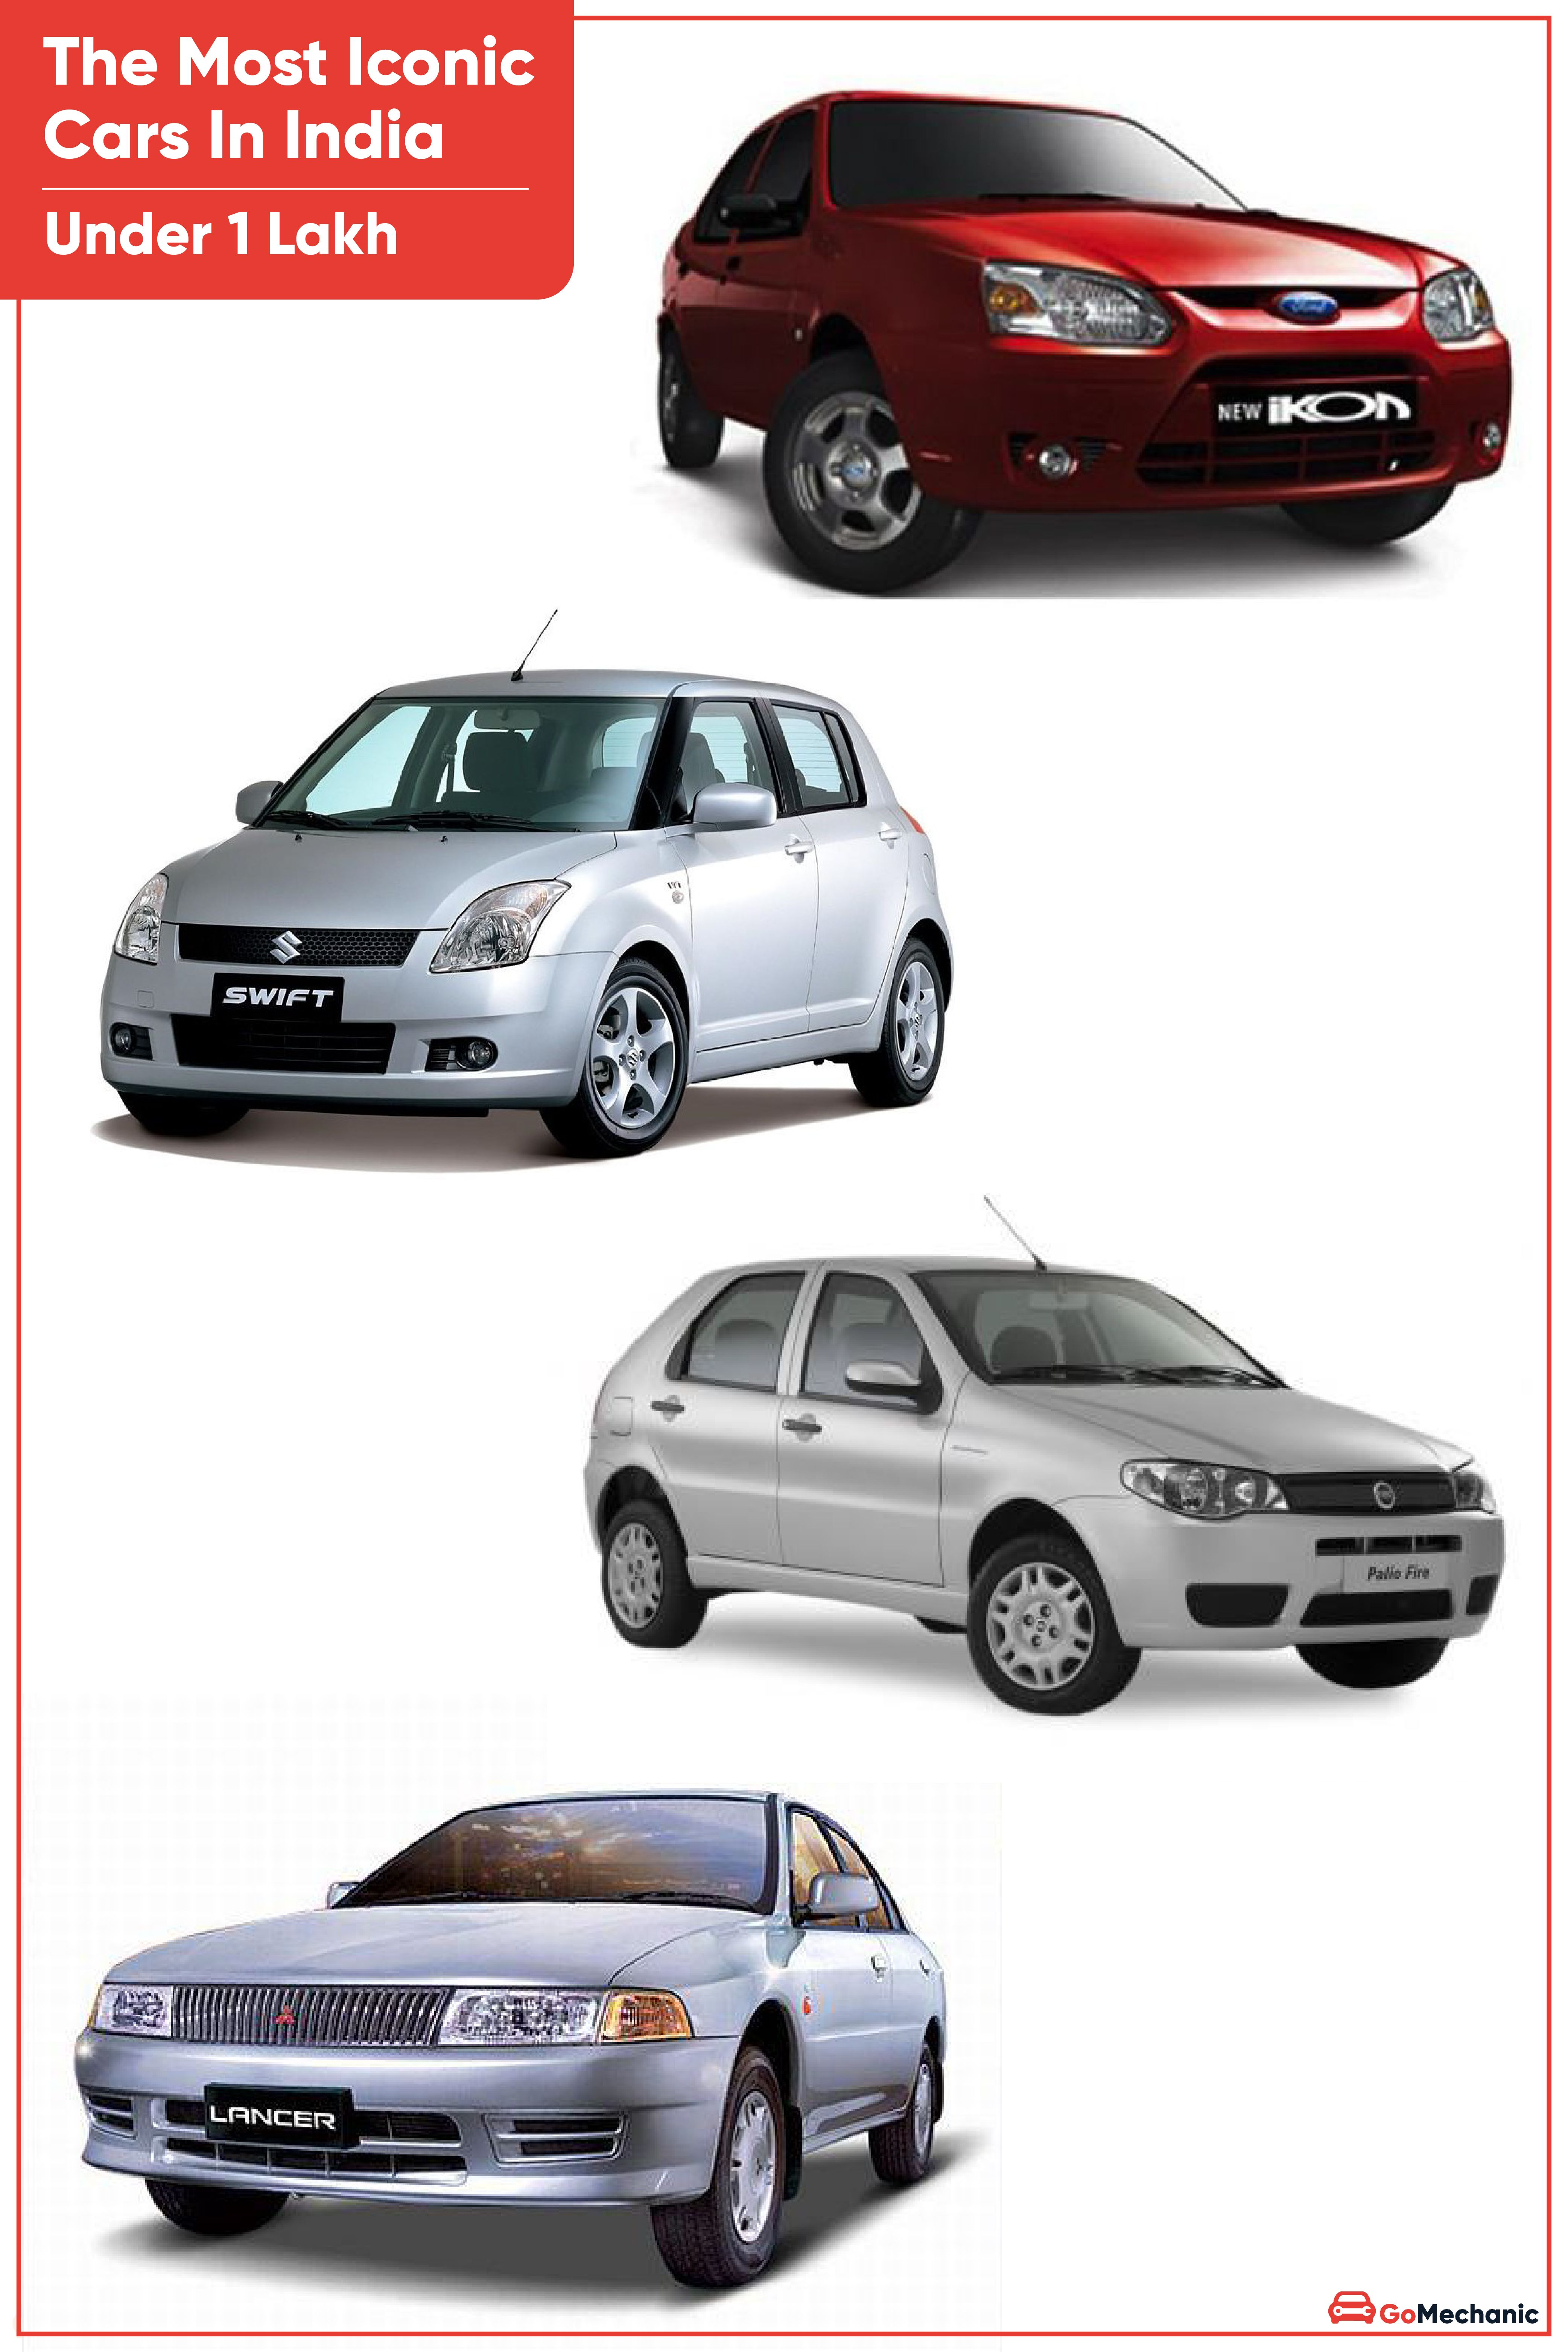 7 Iconic Indian Cars Under 1 Lakh Enthusiast's Cars